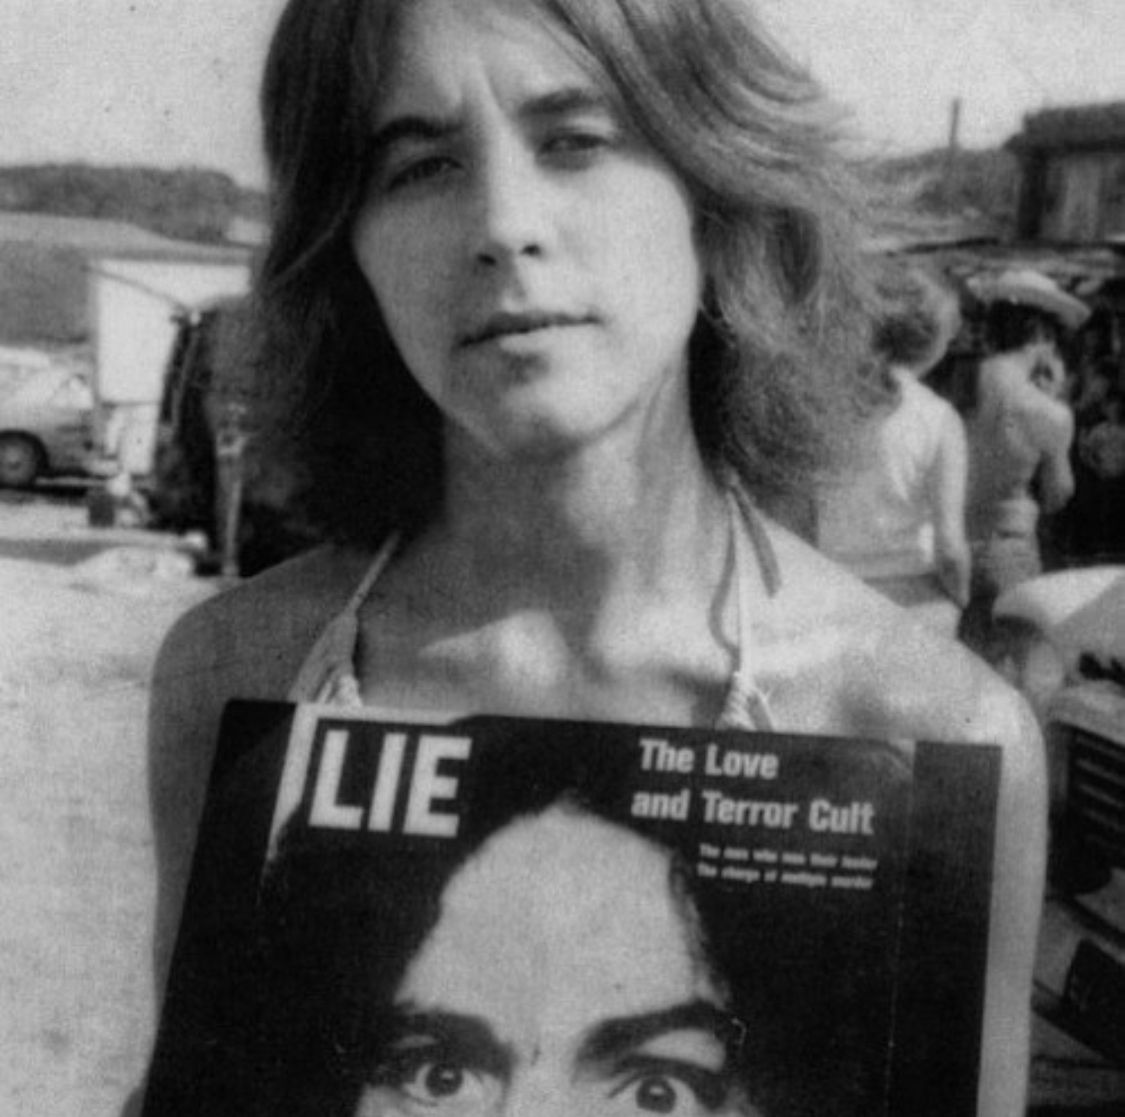 Ruth Ann Moorehouse holding Charlie's first record, LIE | Charles manson family, Manson family, Charles manson